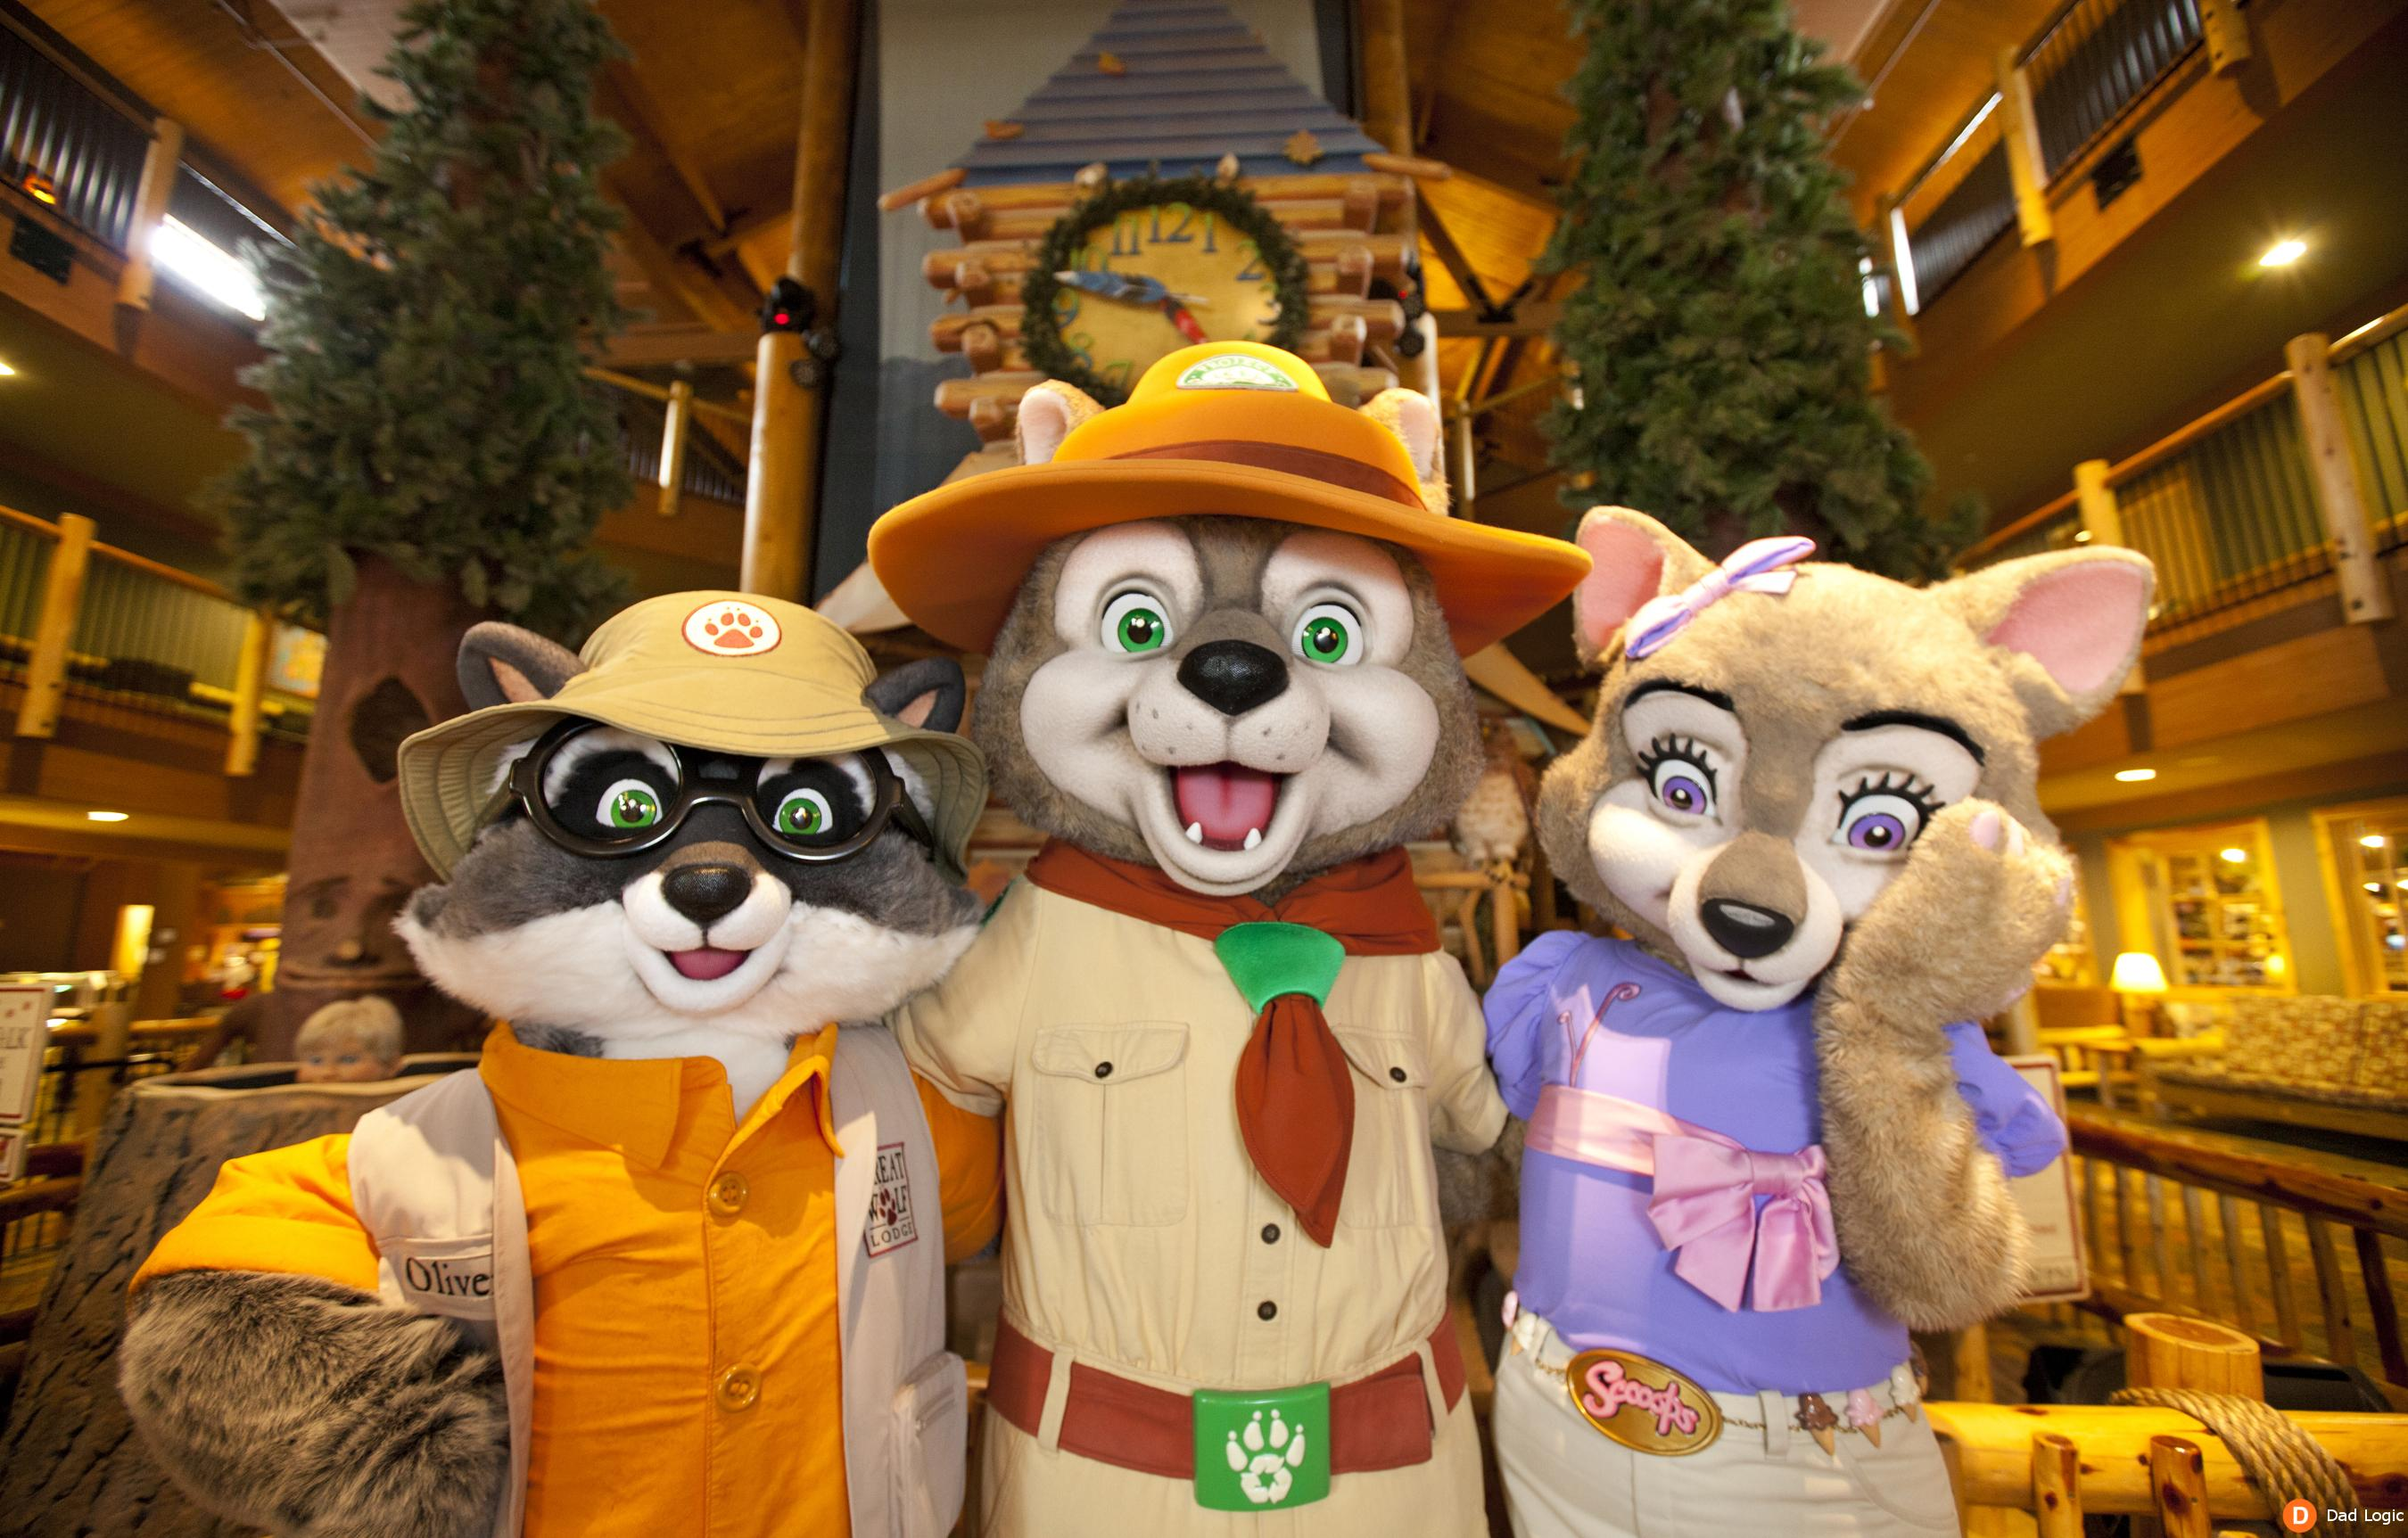 Giveaway Peeps Fun At Great Wolf Lodge For Spring Dad Logic